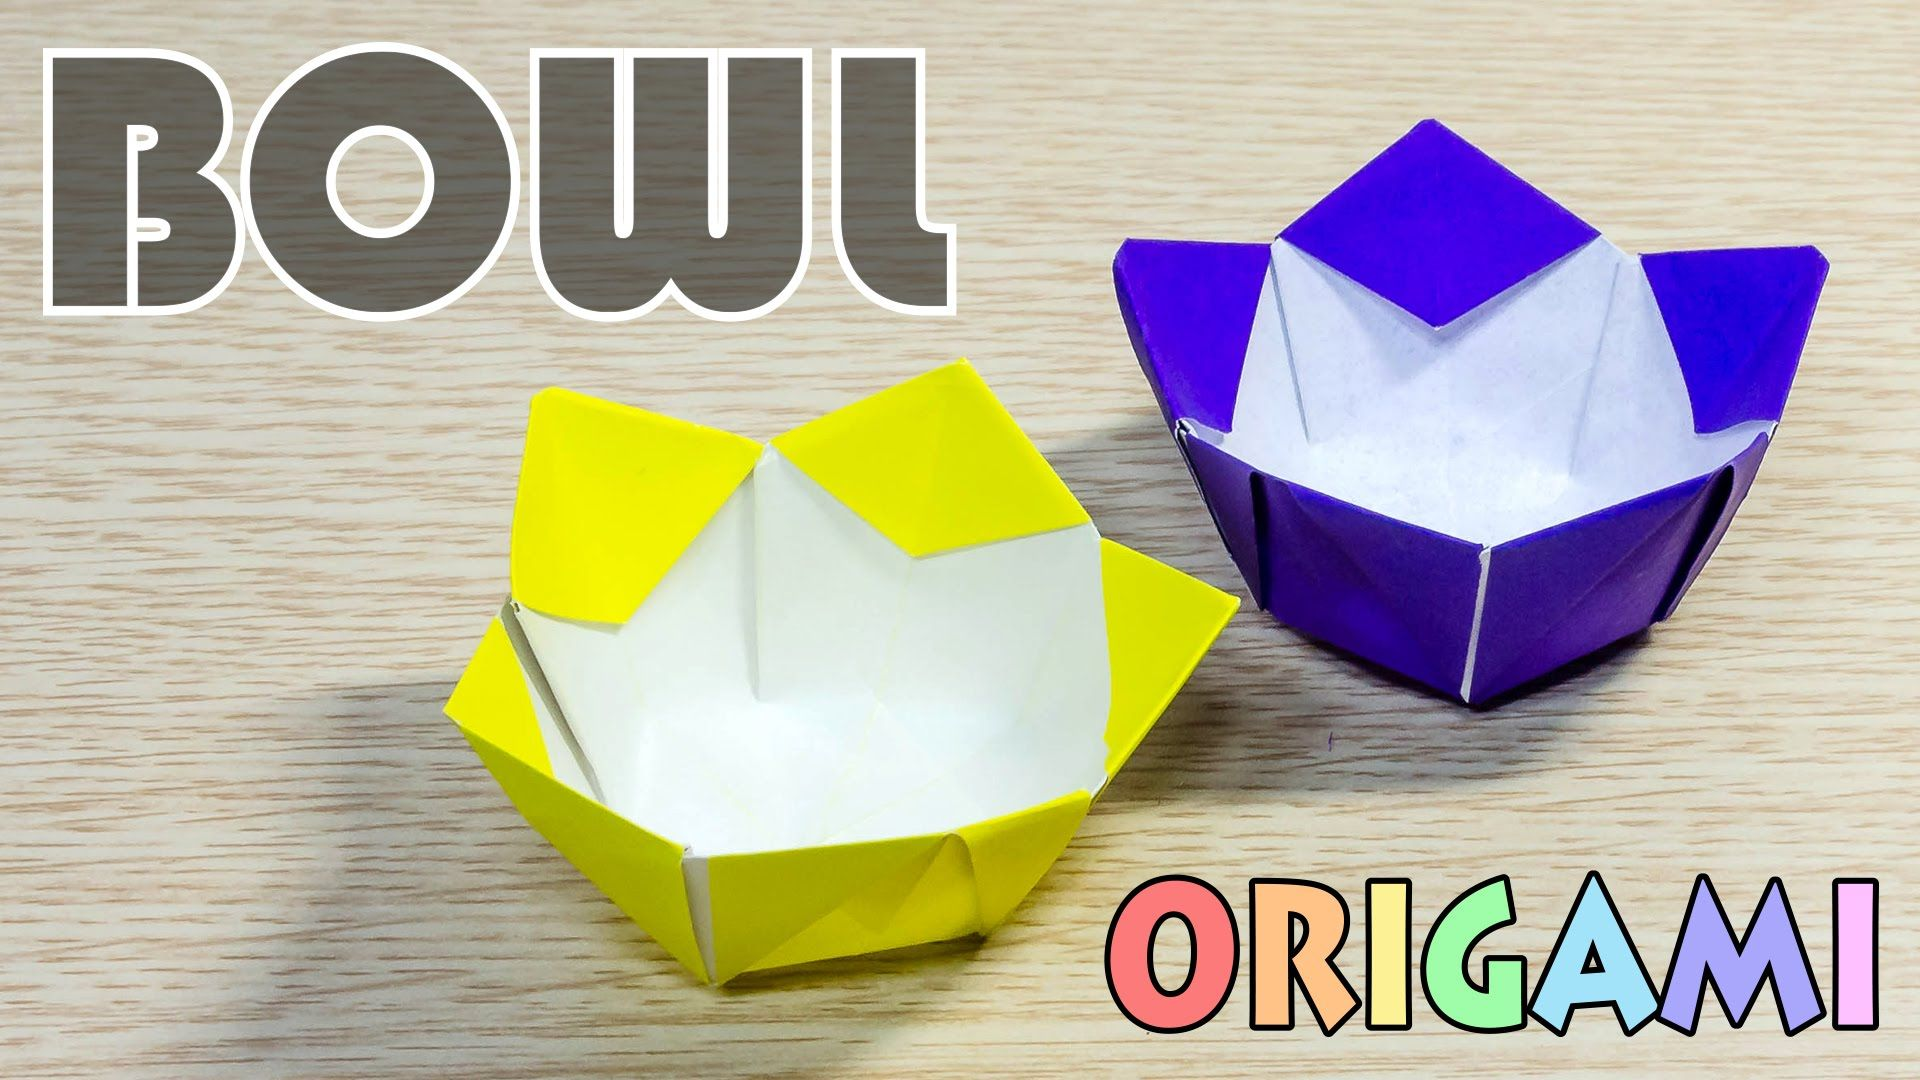 This Is A Pentagon Style Paper Bowl You Need Shape Origami Flowers Instructions Diagrams Or Rectangle To Cut Video Include Folding Figure Instruction Diagram